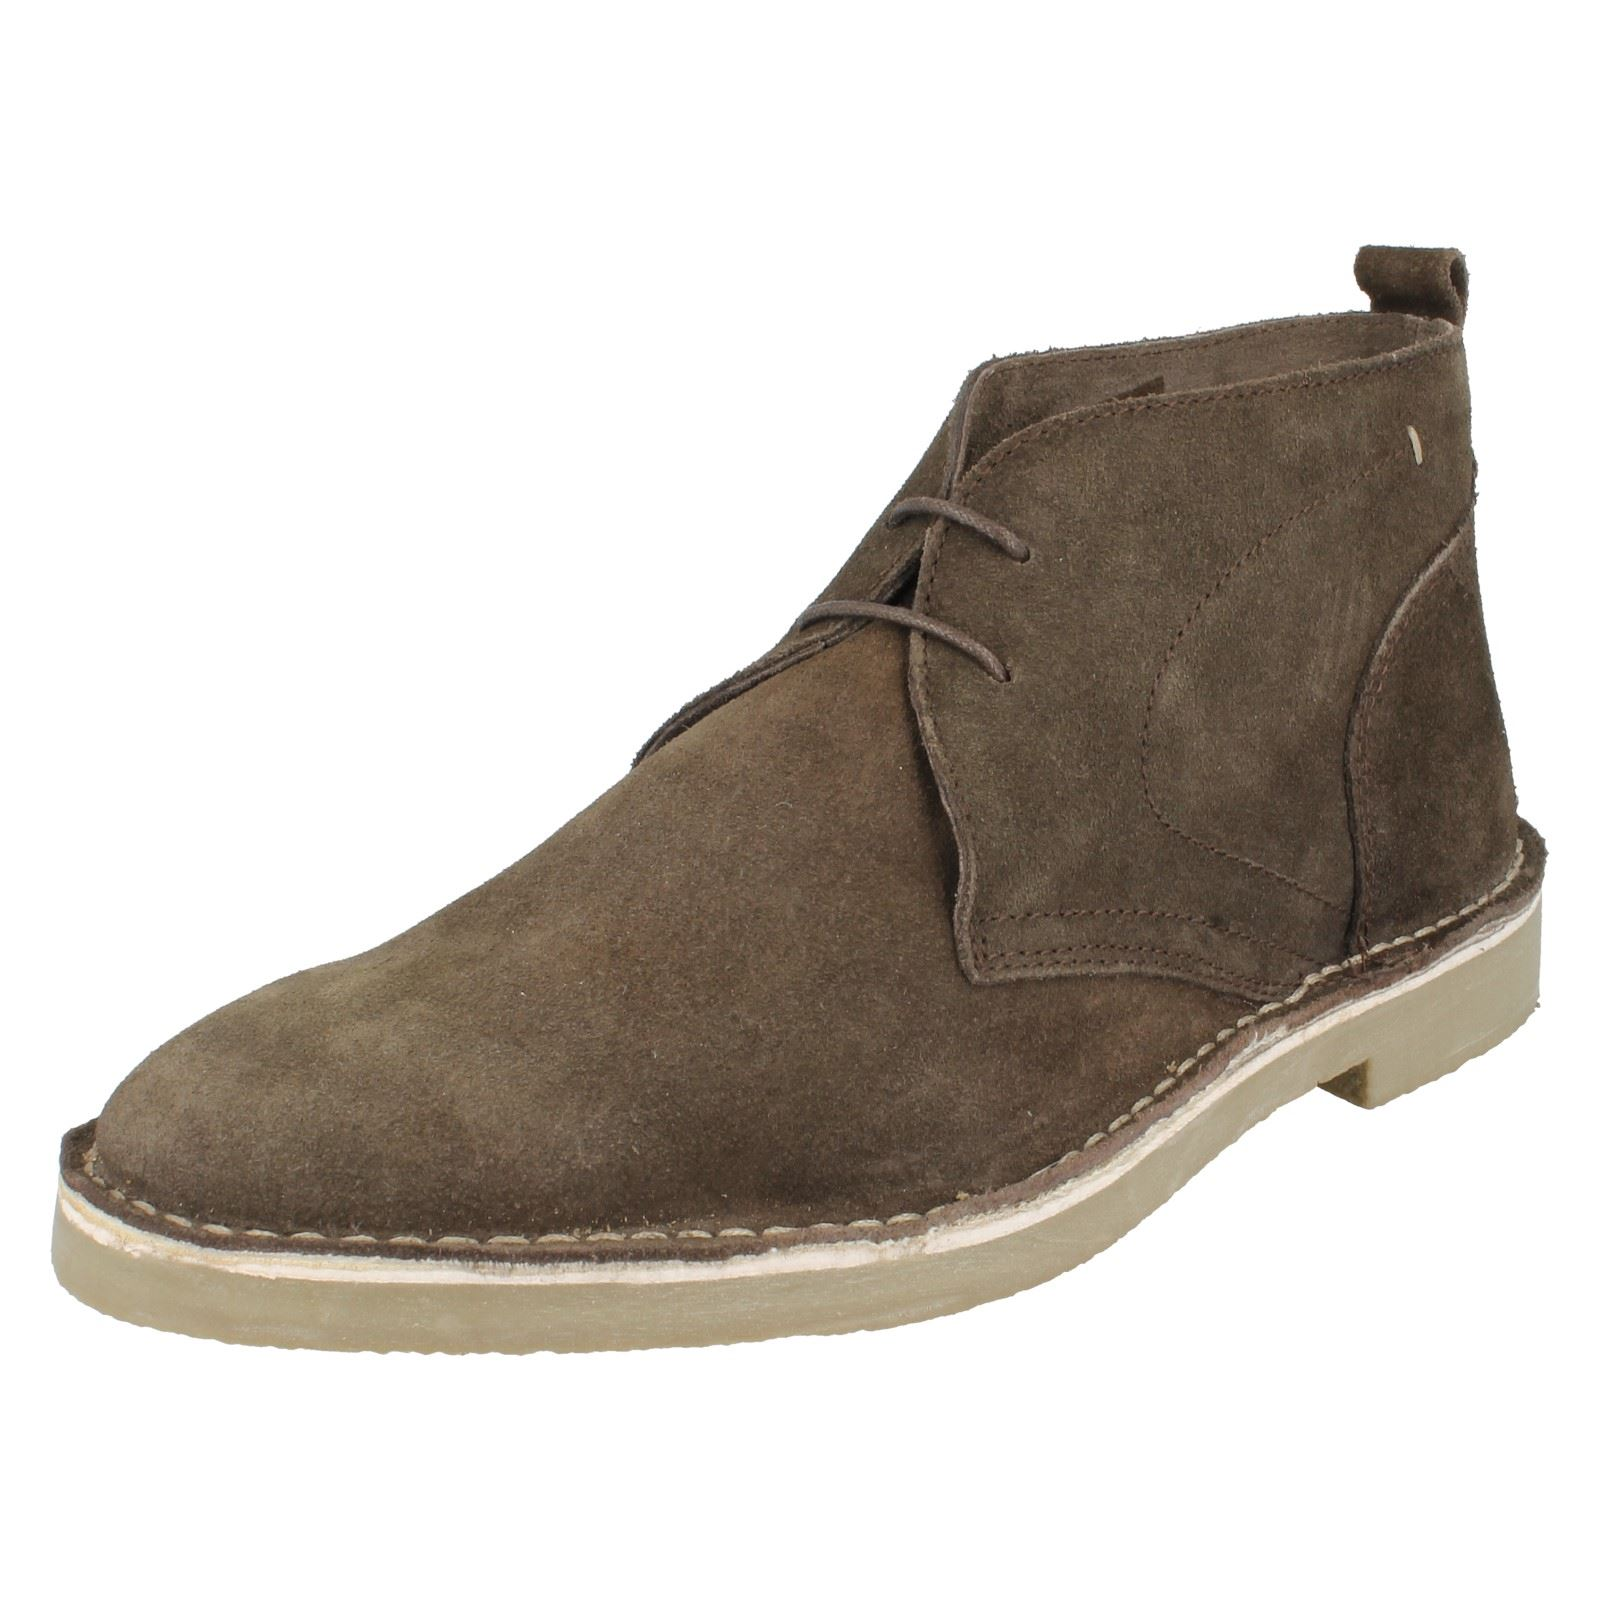 Desert boots, on the other hand, were made for the heat: that lightweight suede and lack of anything resembling interior lining make them a perfect summer shoe. Wear them with shorts, wear them.